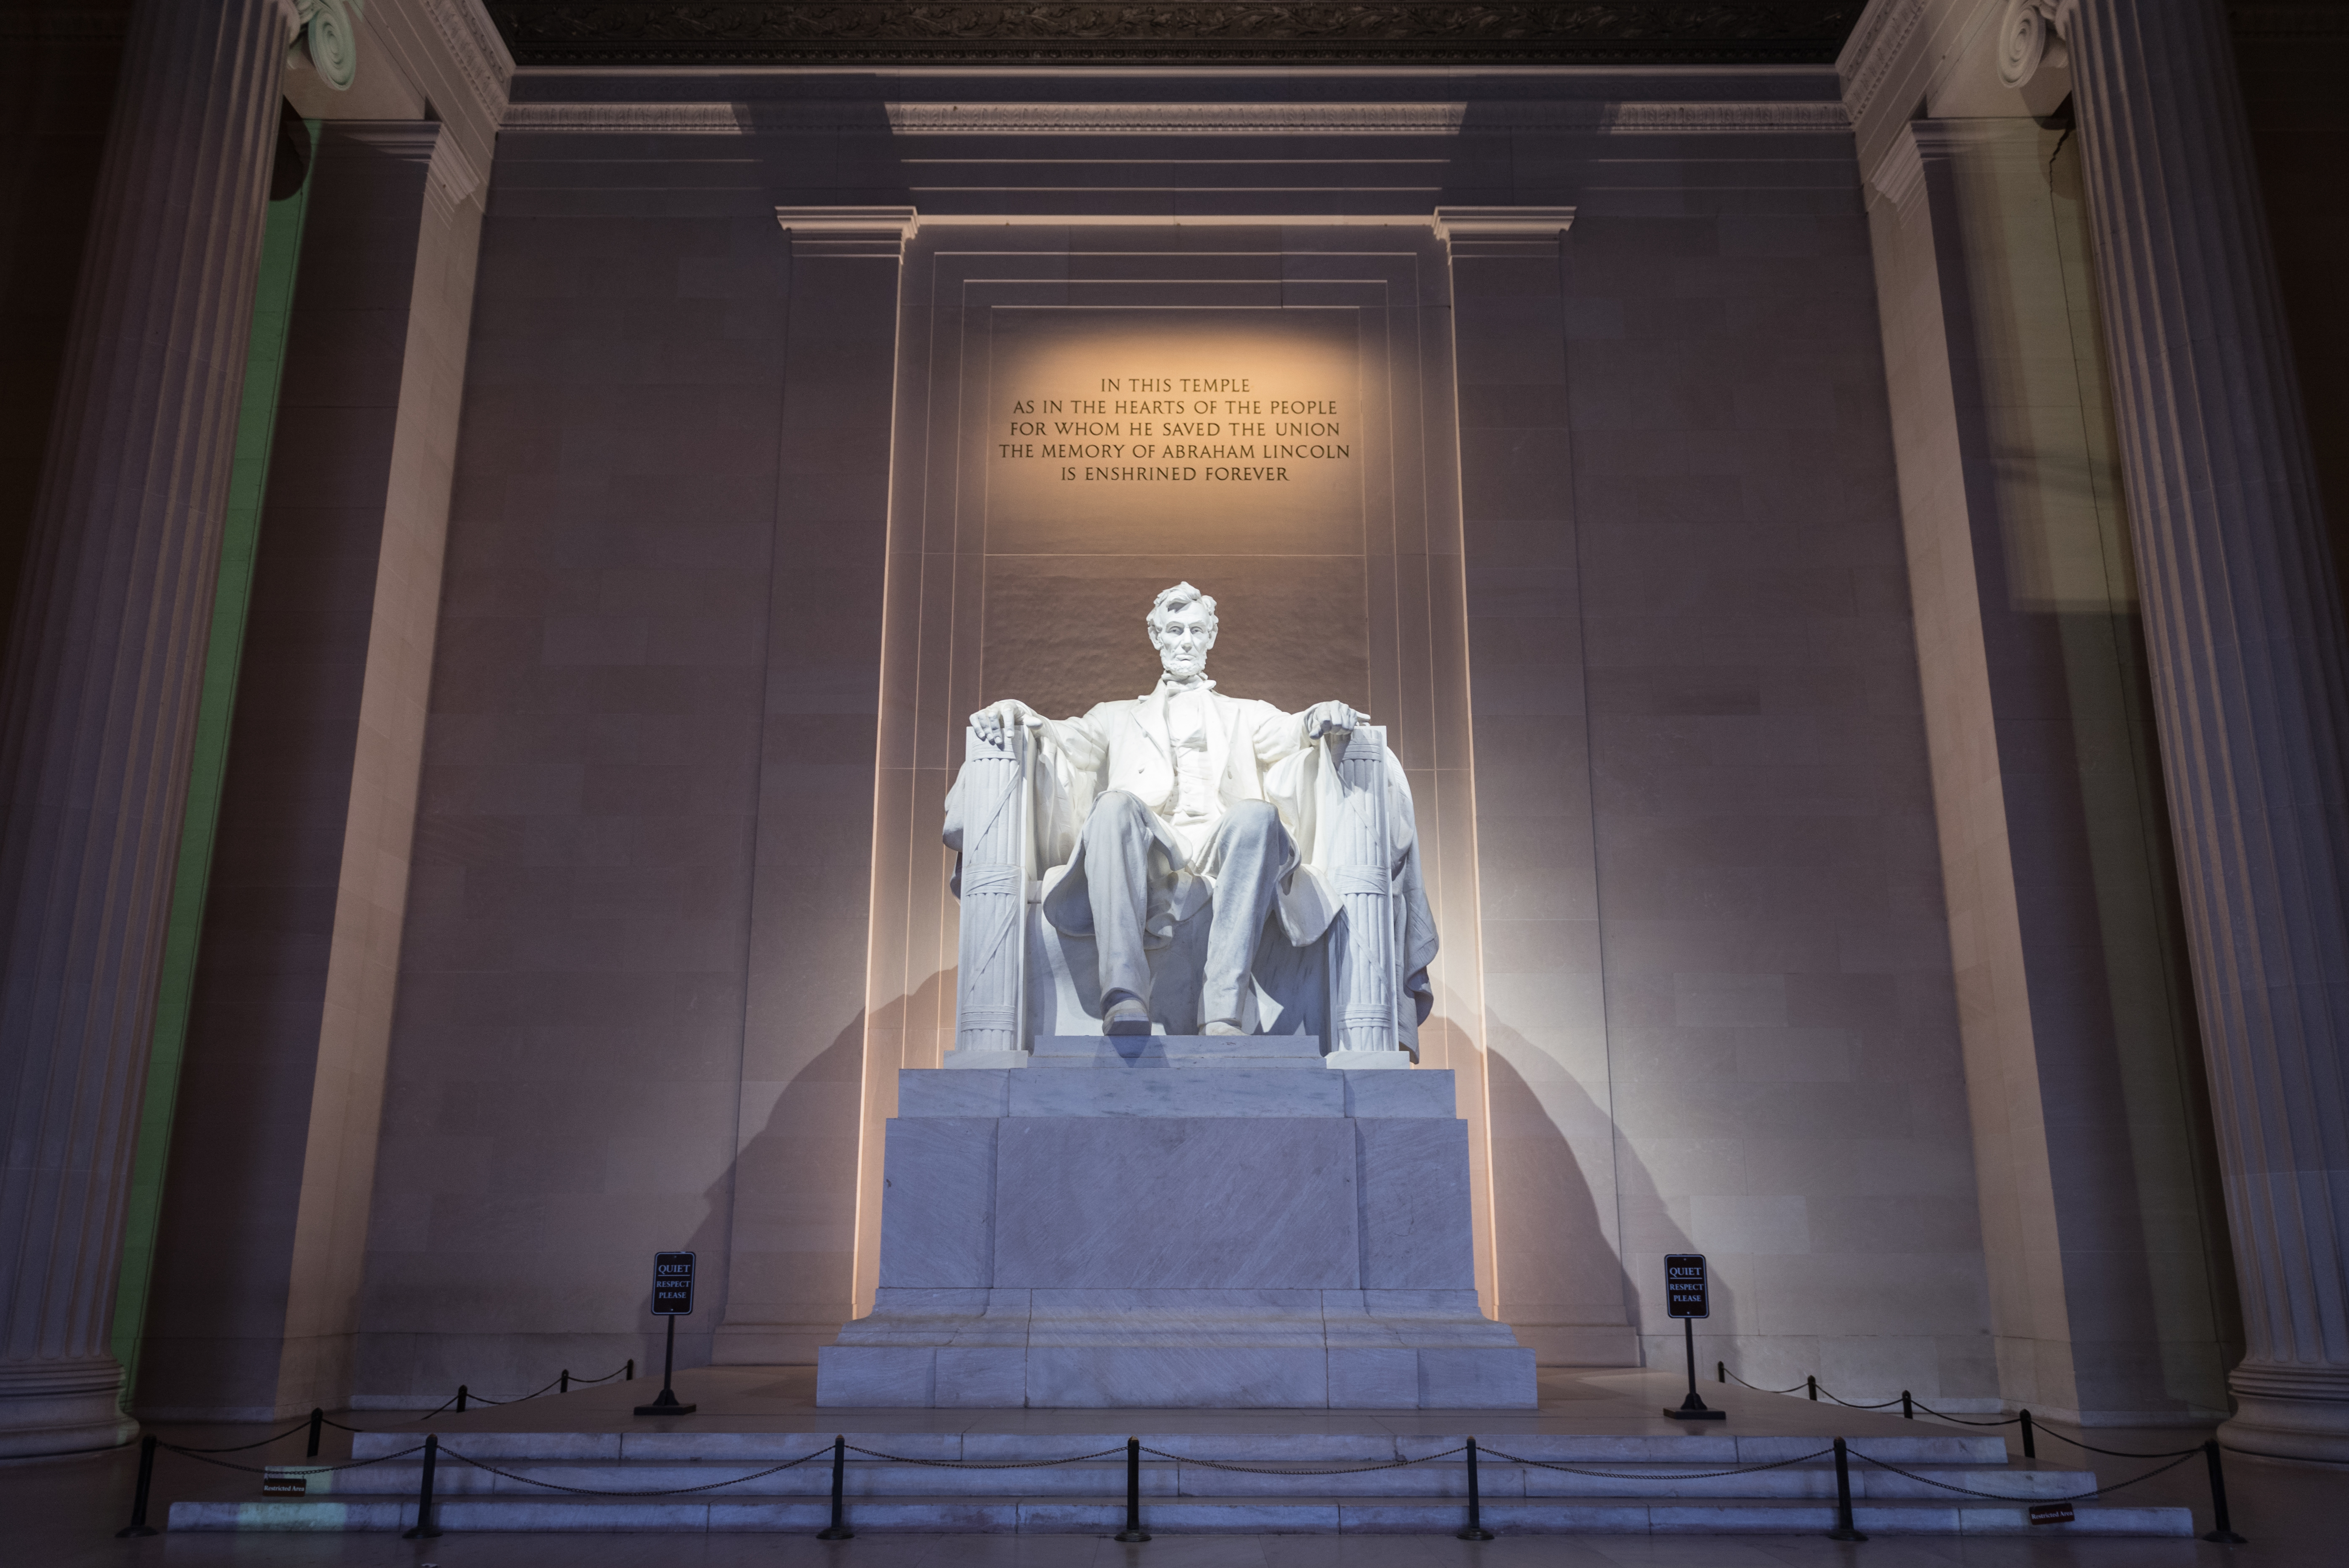 """Lincoln Memorial with the inscription, """"In this temple, as in the hearts of the people for whom he saved the Union, the memory of Abraham Lincoln is enshrined forever."""""""